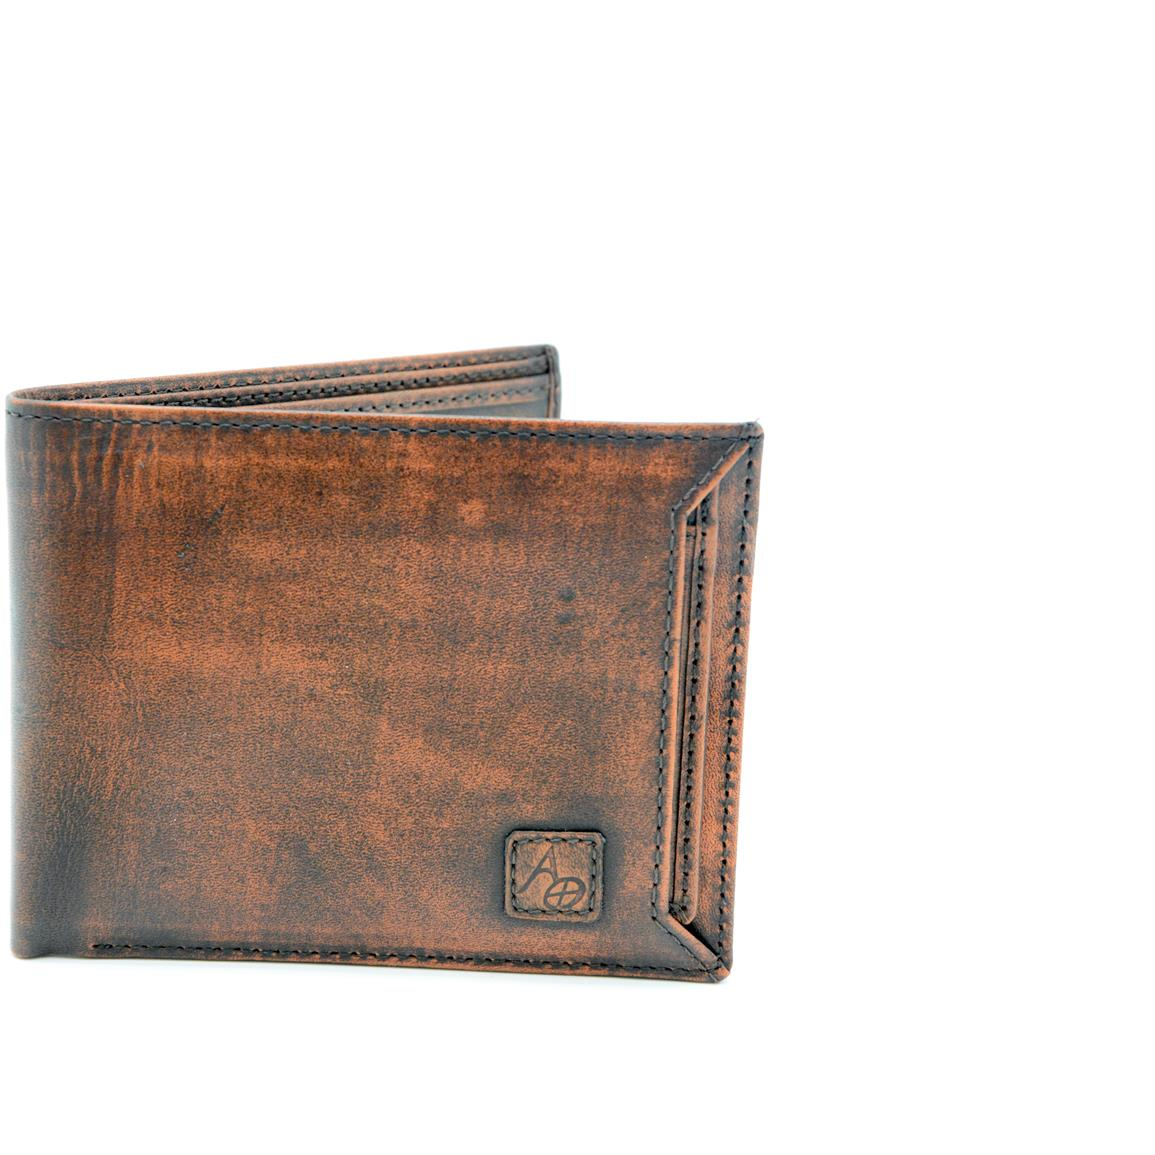 American Outdoorsman Washed Leather Bifold Wallet with Detachable ID Holder. Brown